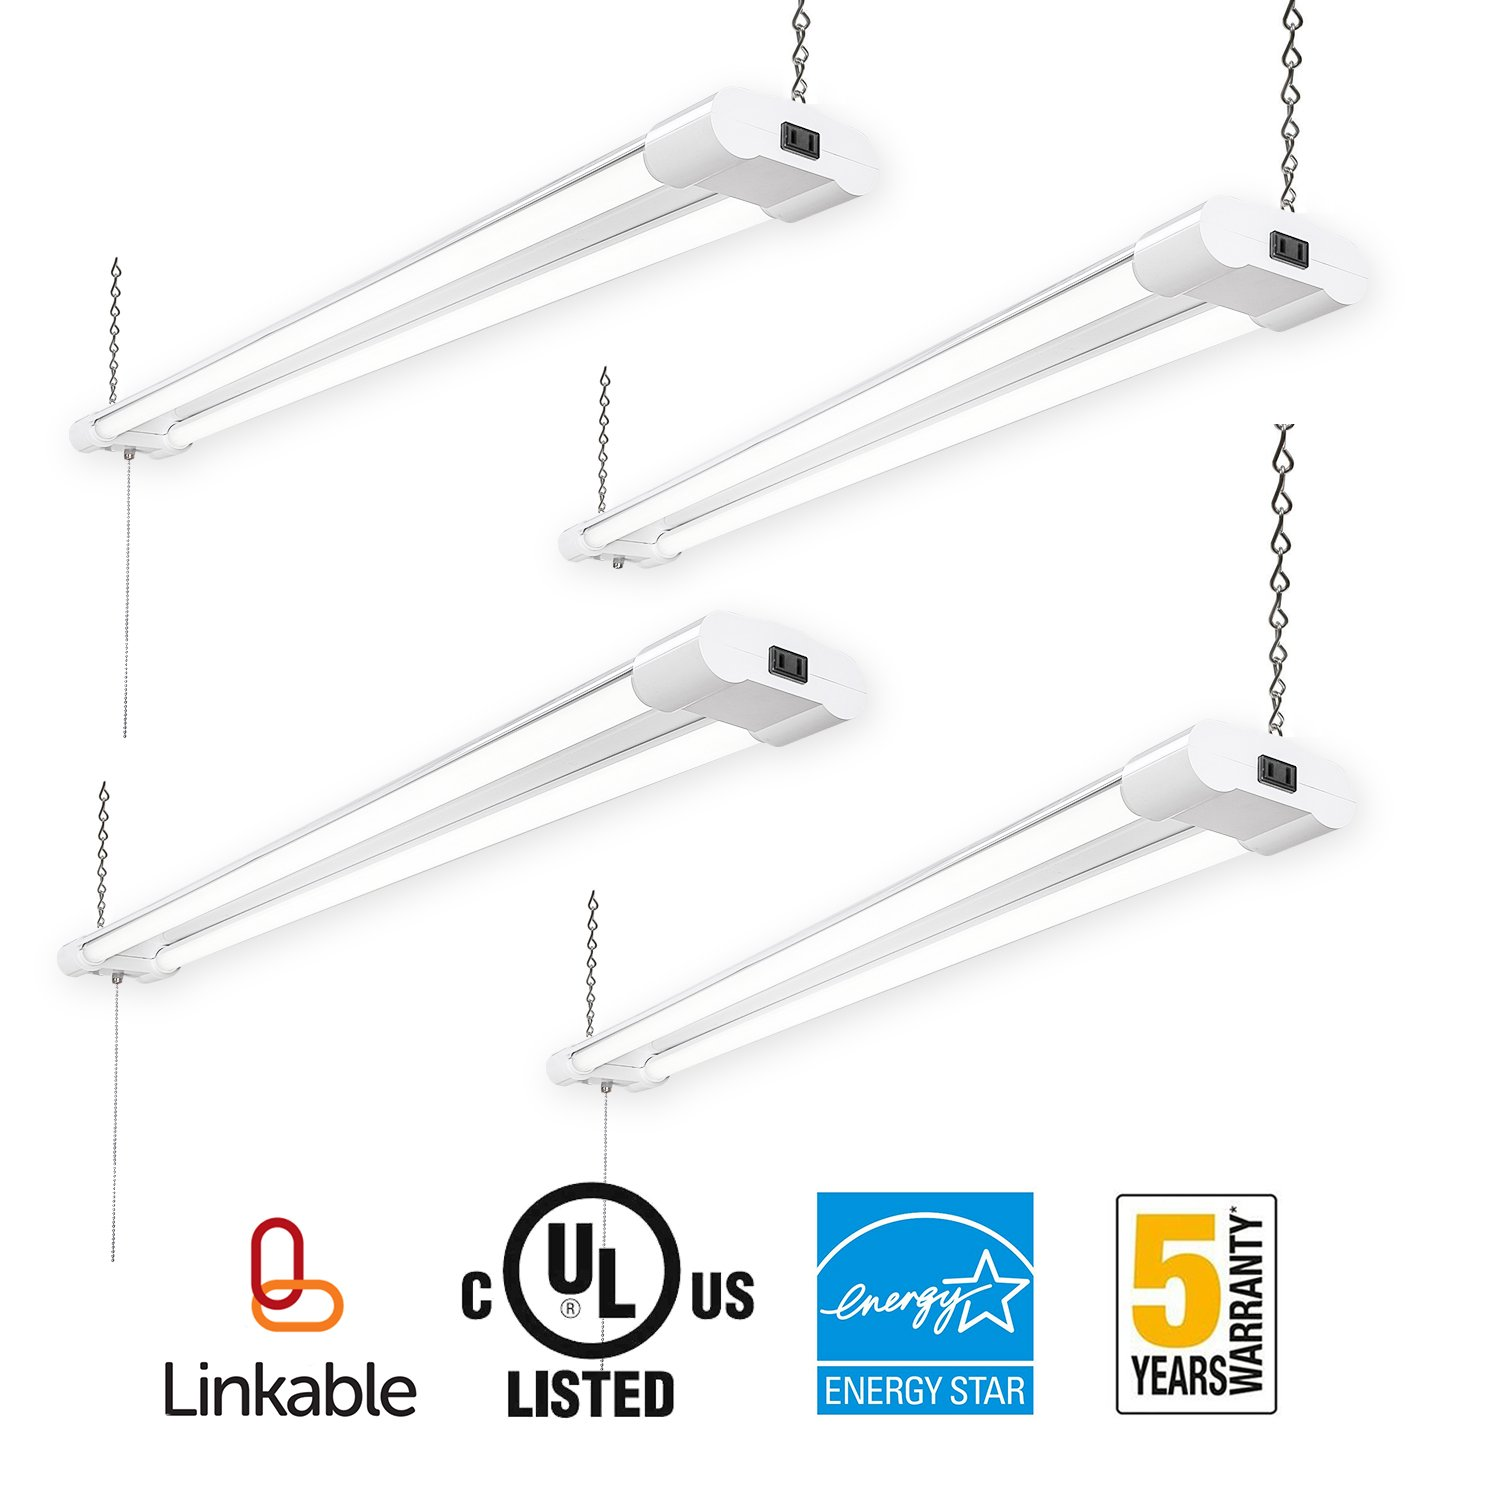 Amico LED Utility Shop Light,4FT Integrated Linkable Double-Fixture,40W(100W Eq)4000 Lumens 5000K Daylight,with Pull Chain Switch for Workshop Garage Basement (4 pack)